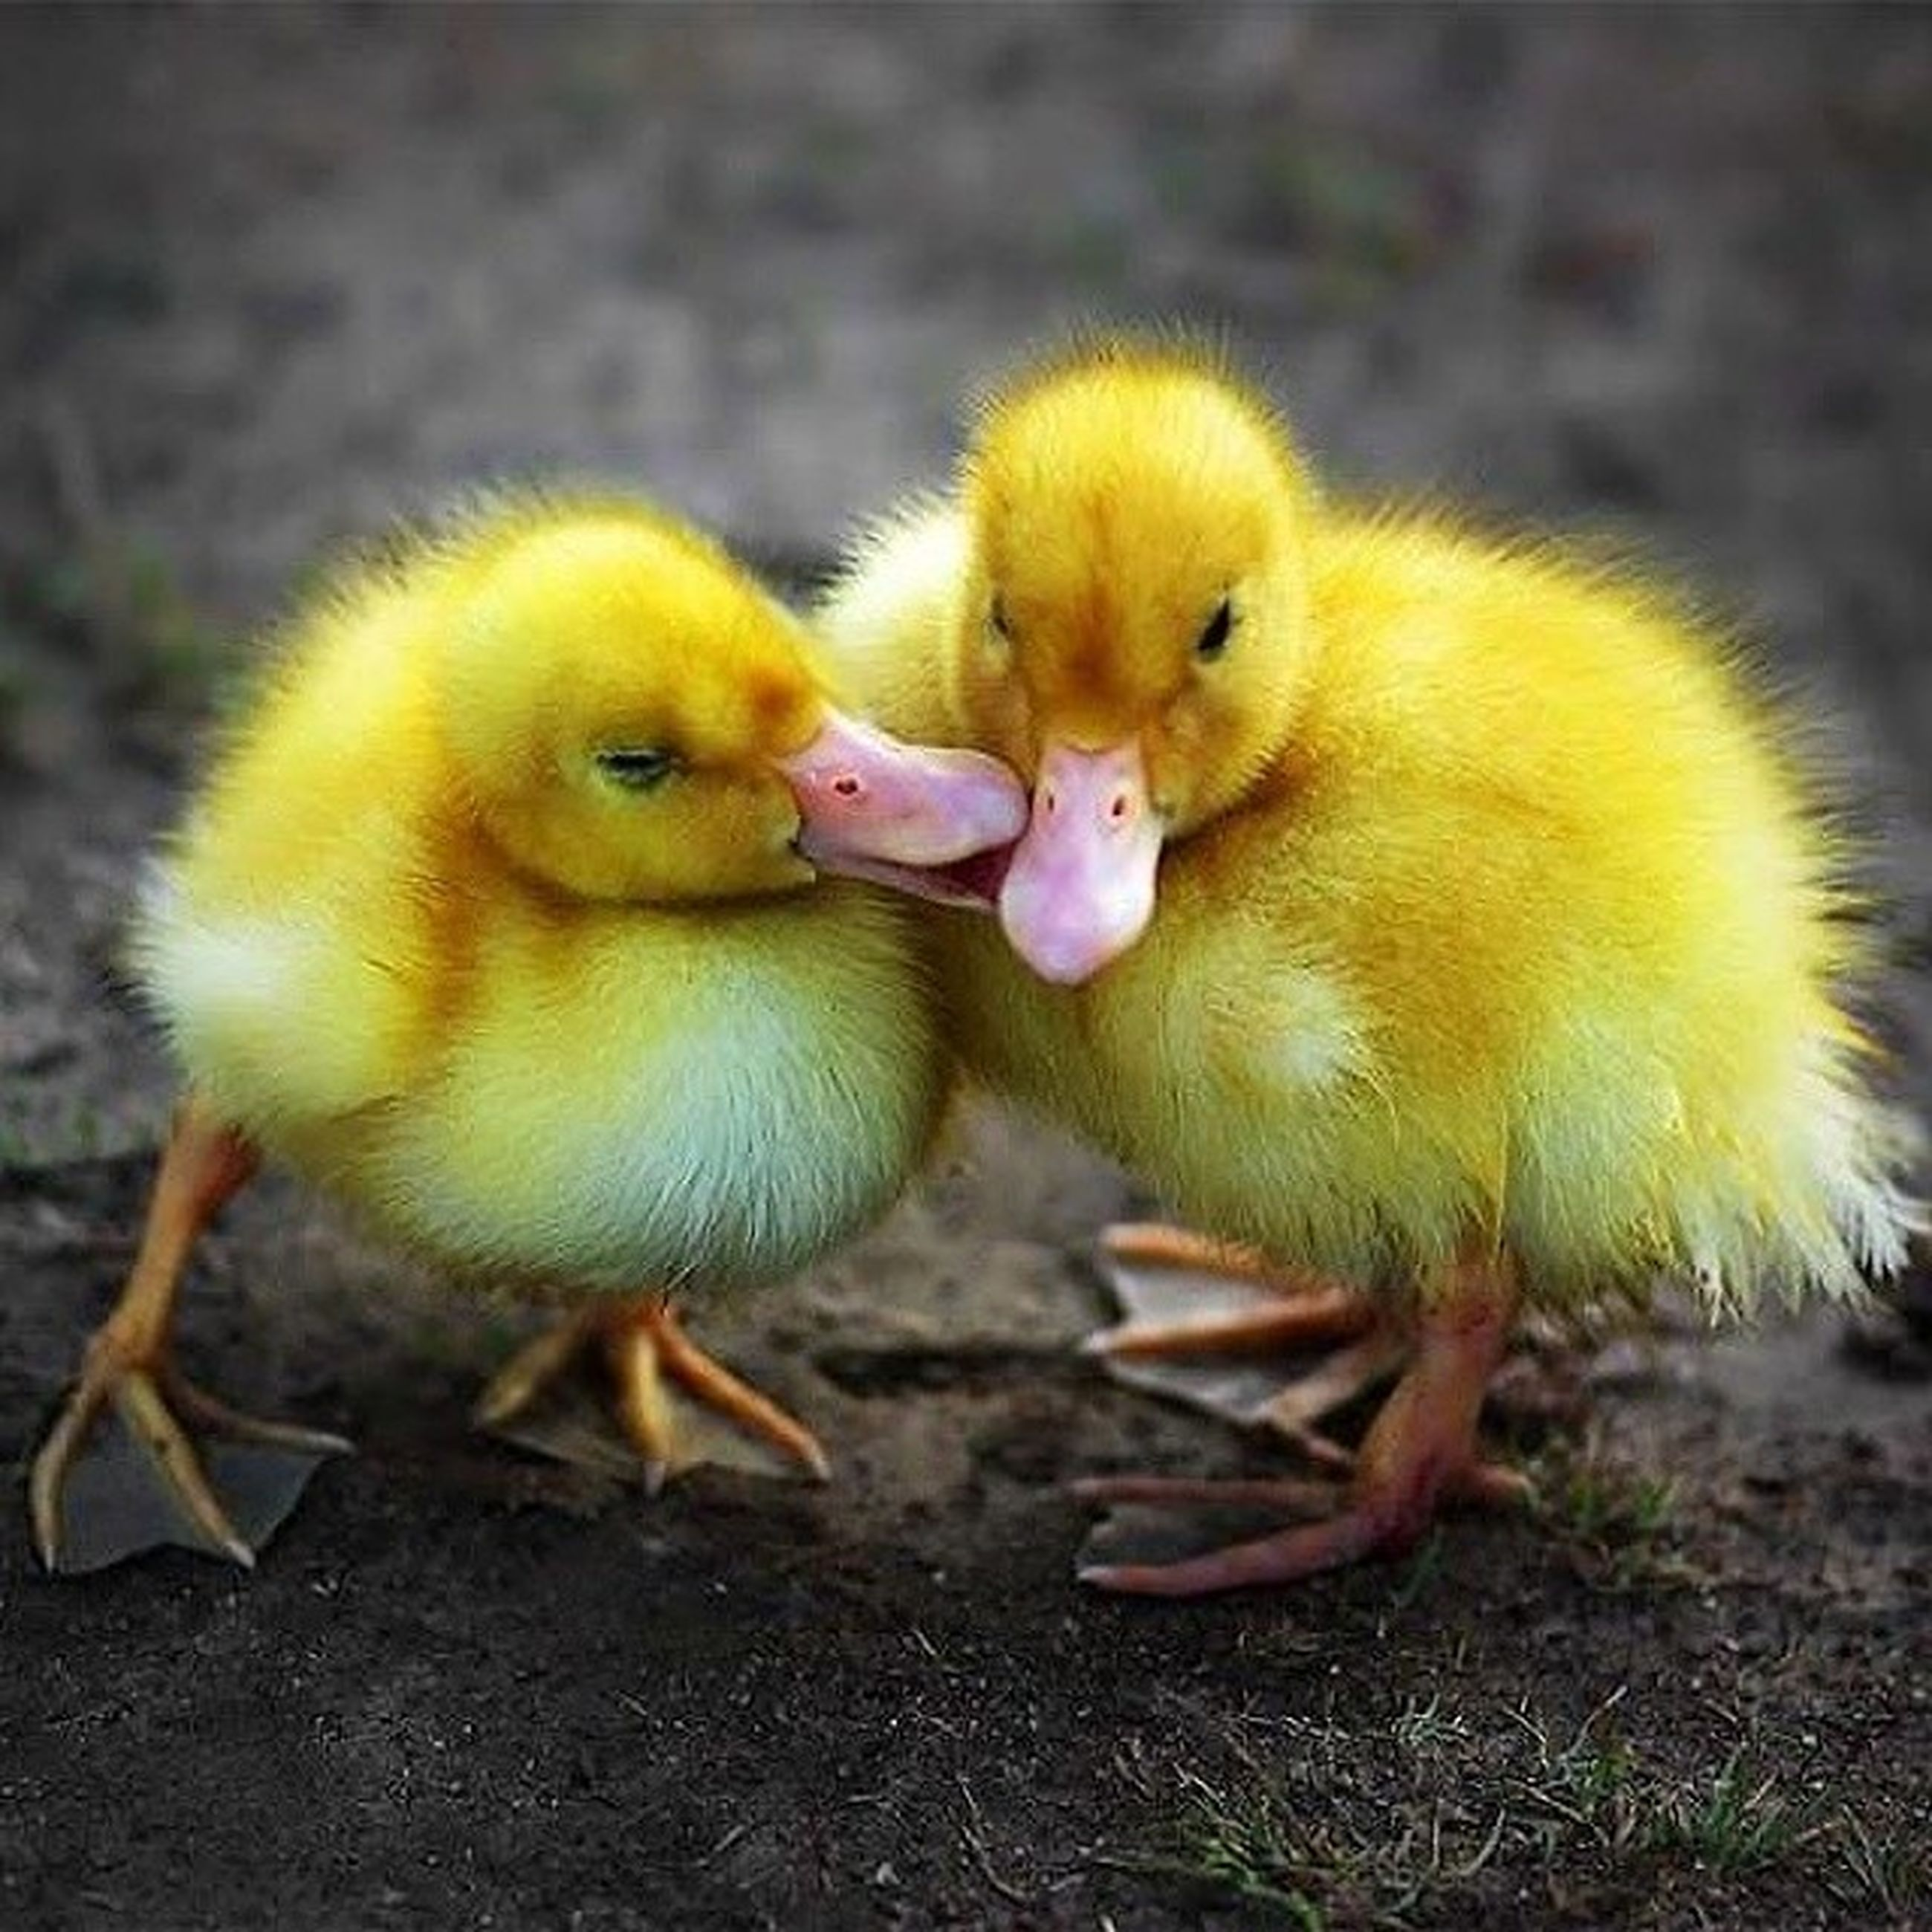 animal themes, animals in the wild, wildlife, bird, young animal, one animal, yellow, close-up, two animals, focus on foreground, young bird, cute, day, togetherness, duck, nature, no people, duckling, outdoors, green color